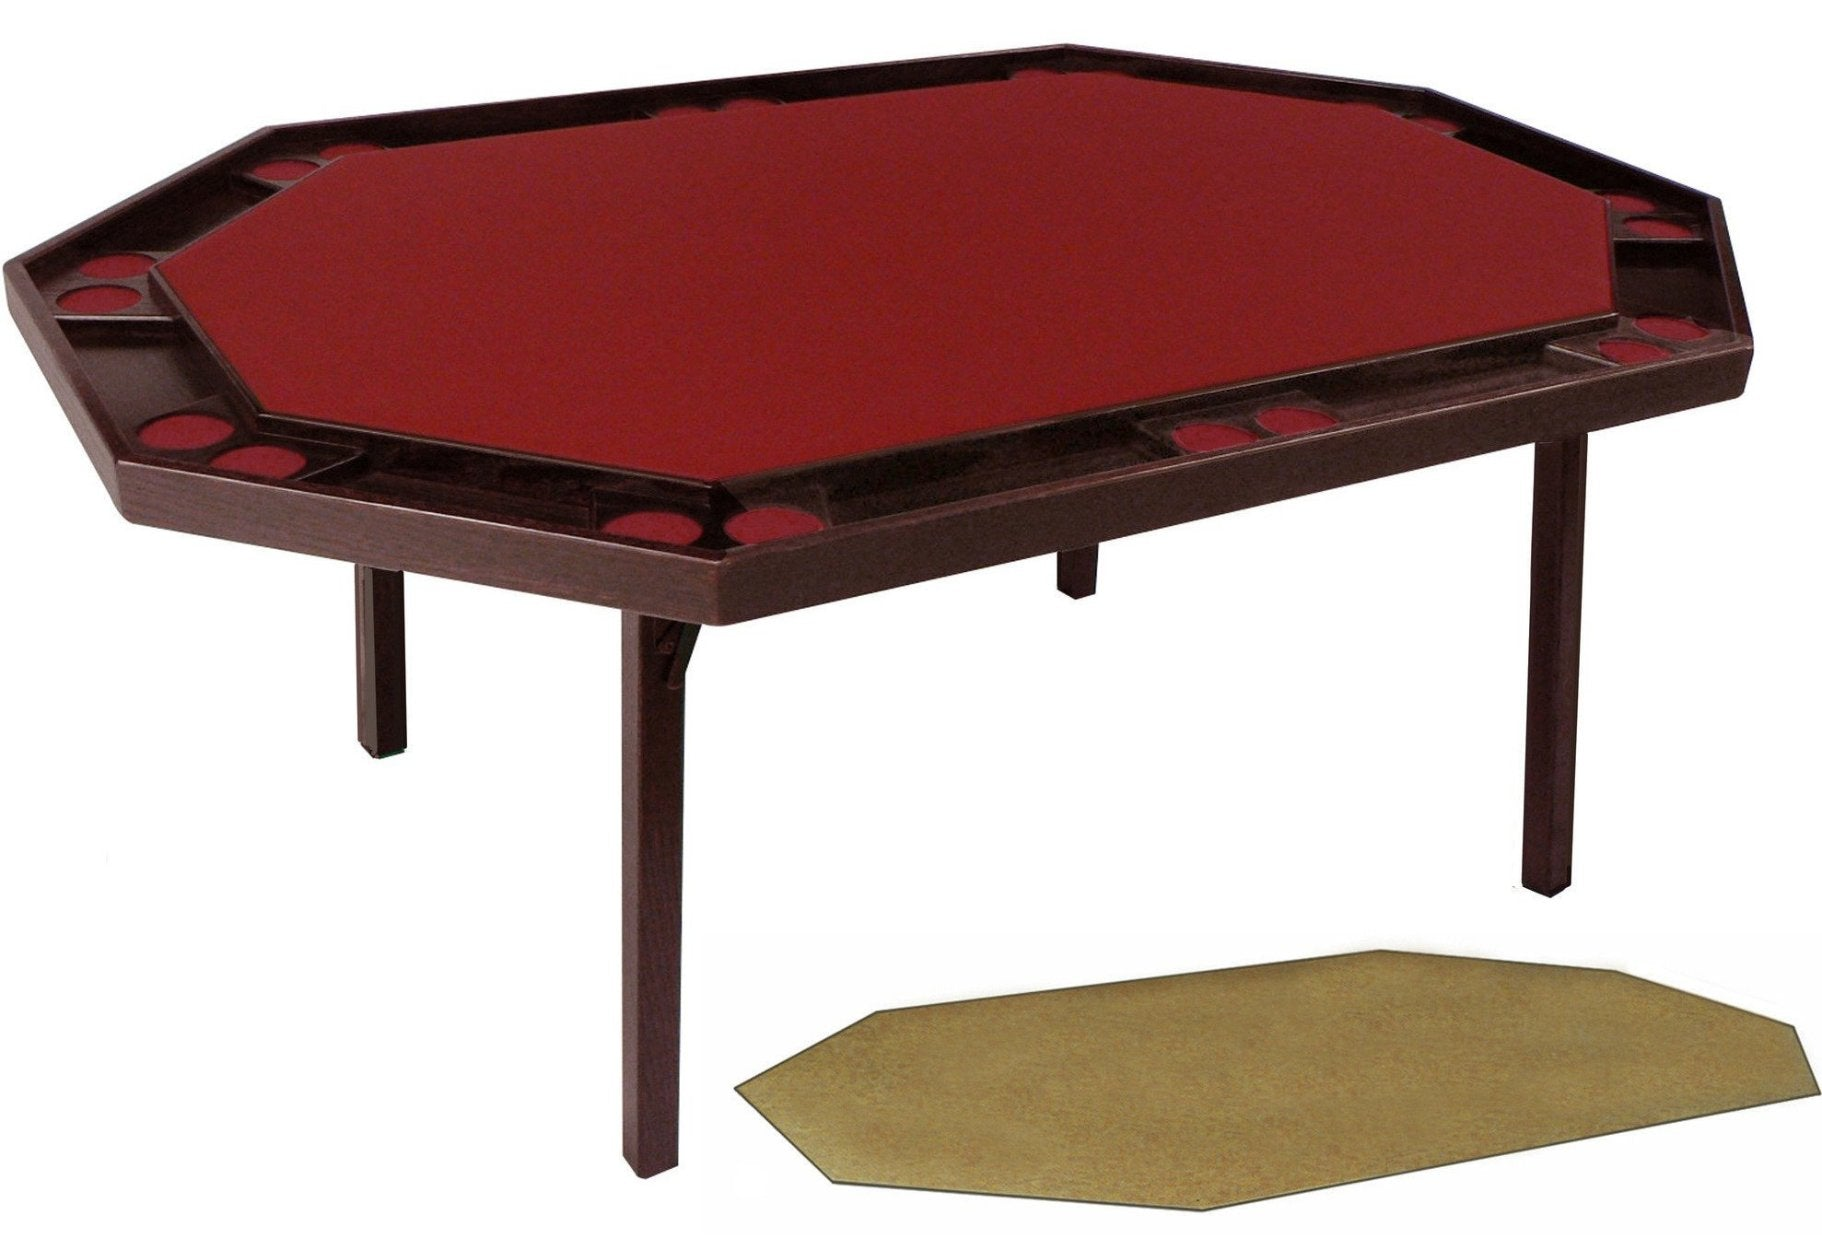 Gentil Oak Deluxe Folding Poker Table (includes A Utility Service Top), By  Kestell, ...